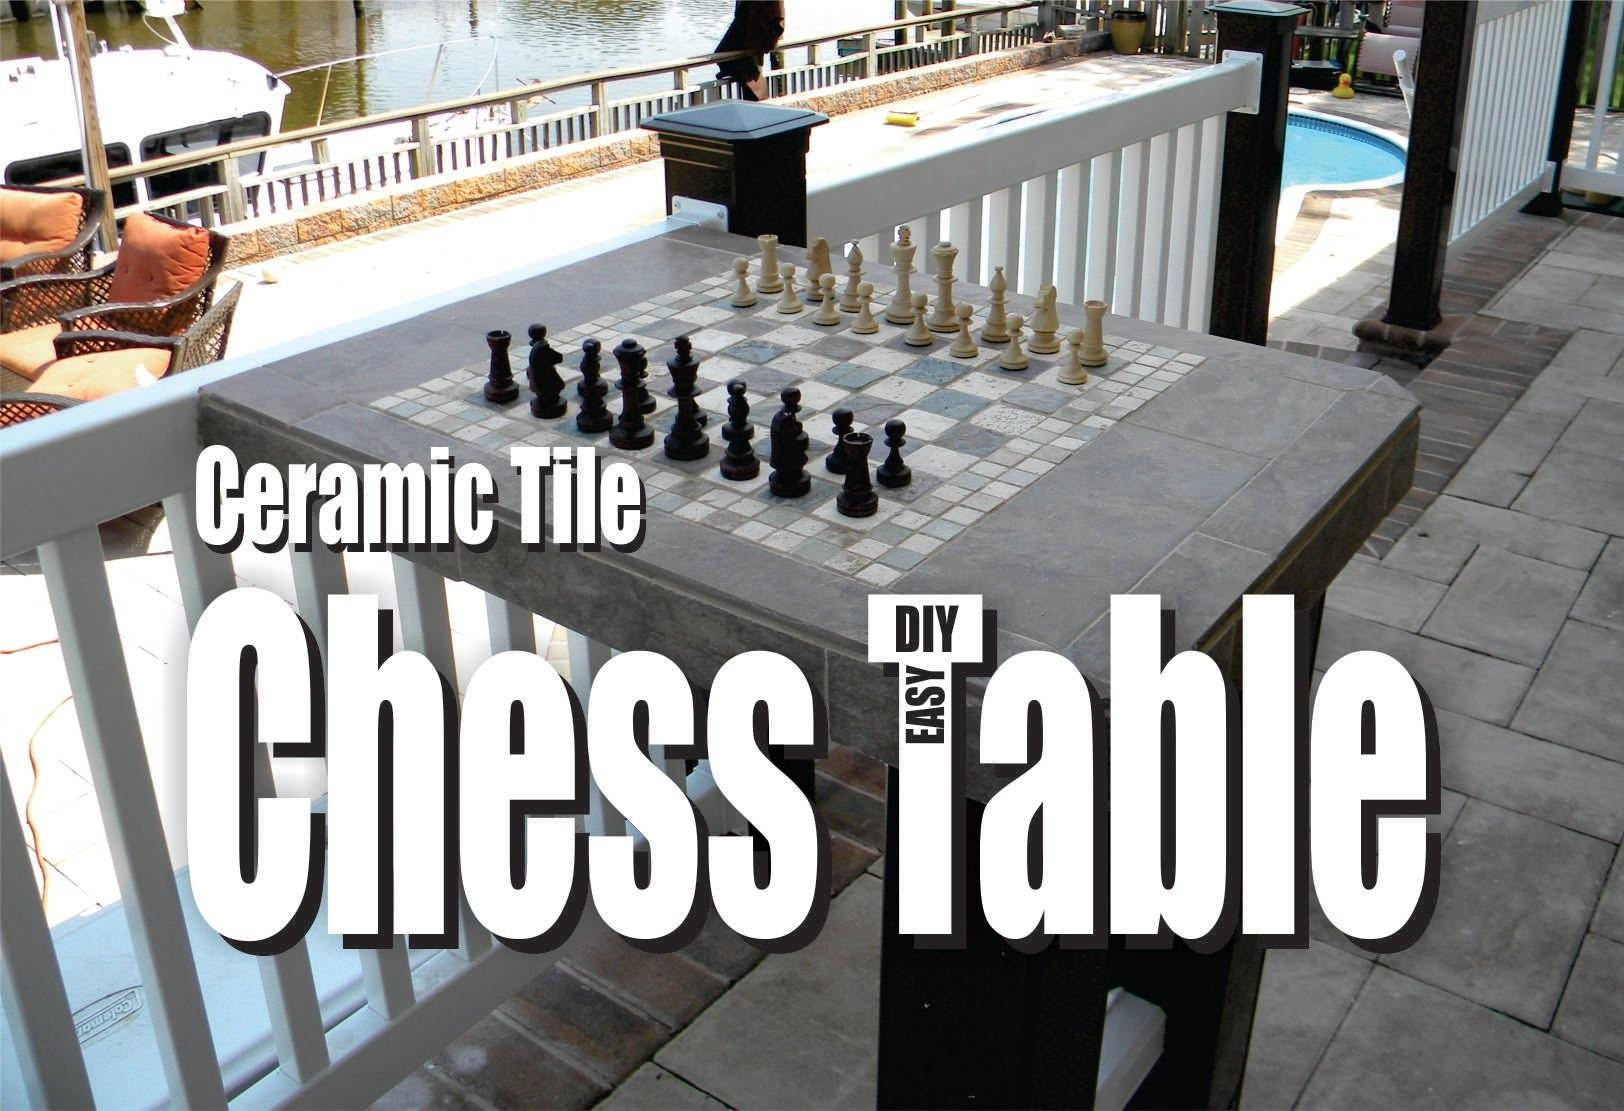 Make Ceramic Tile Chess Table Easy Diy Project